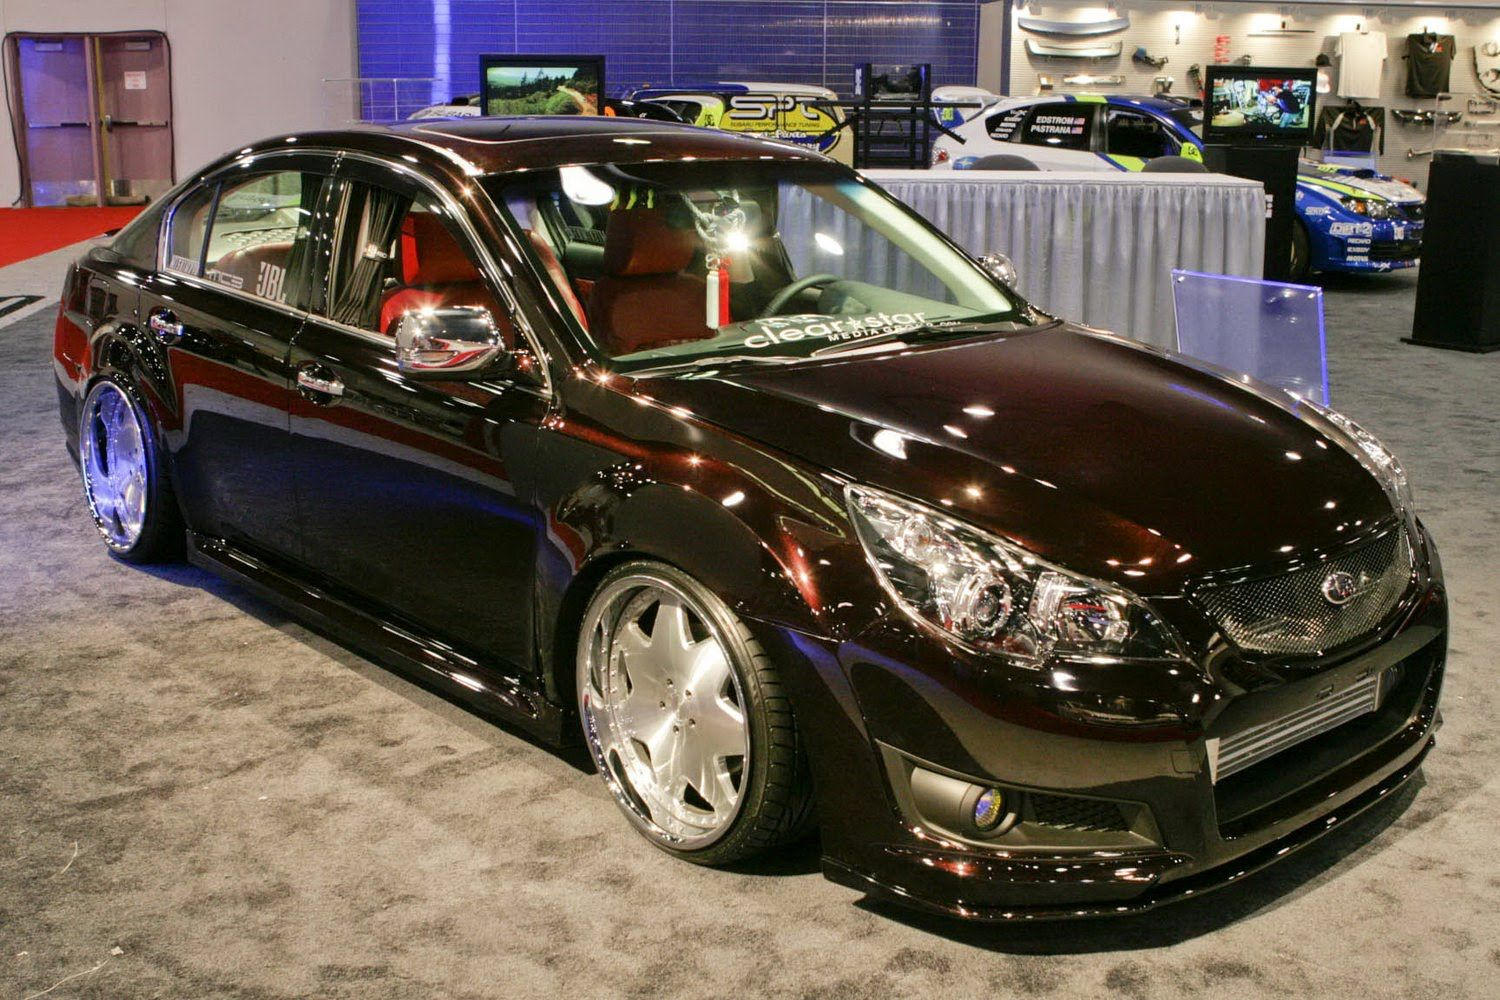 Luxury subaru legacy vip concept revealed at 2009 sema show luxury subaru legacy vip concept revealed at 2009 sema show photos its your auto world new cars auto news reviews photos videos vanachro Image collections